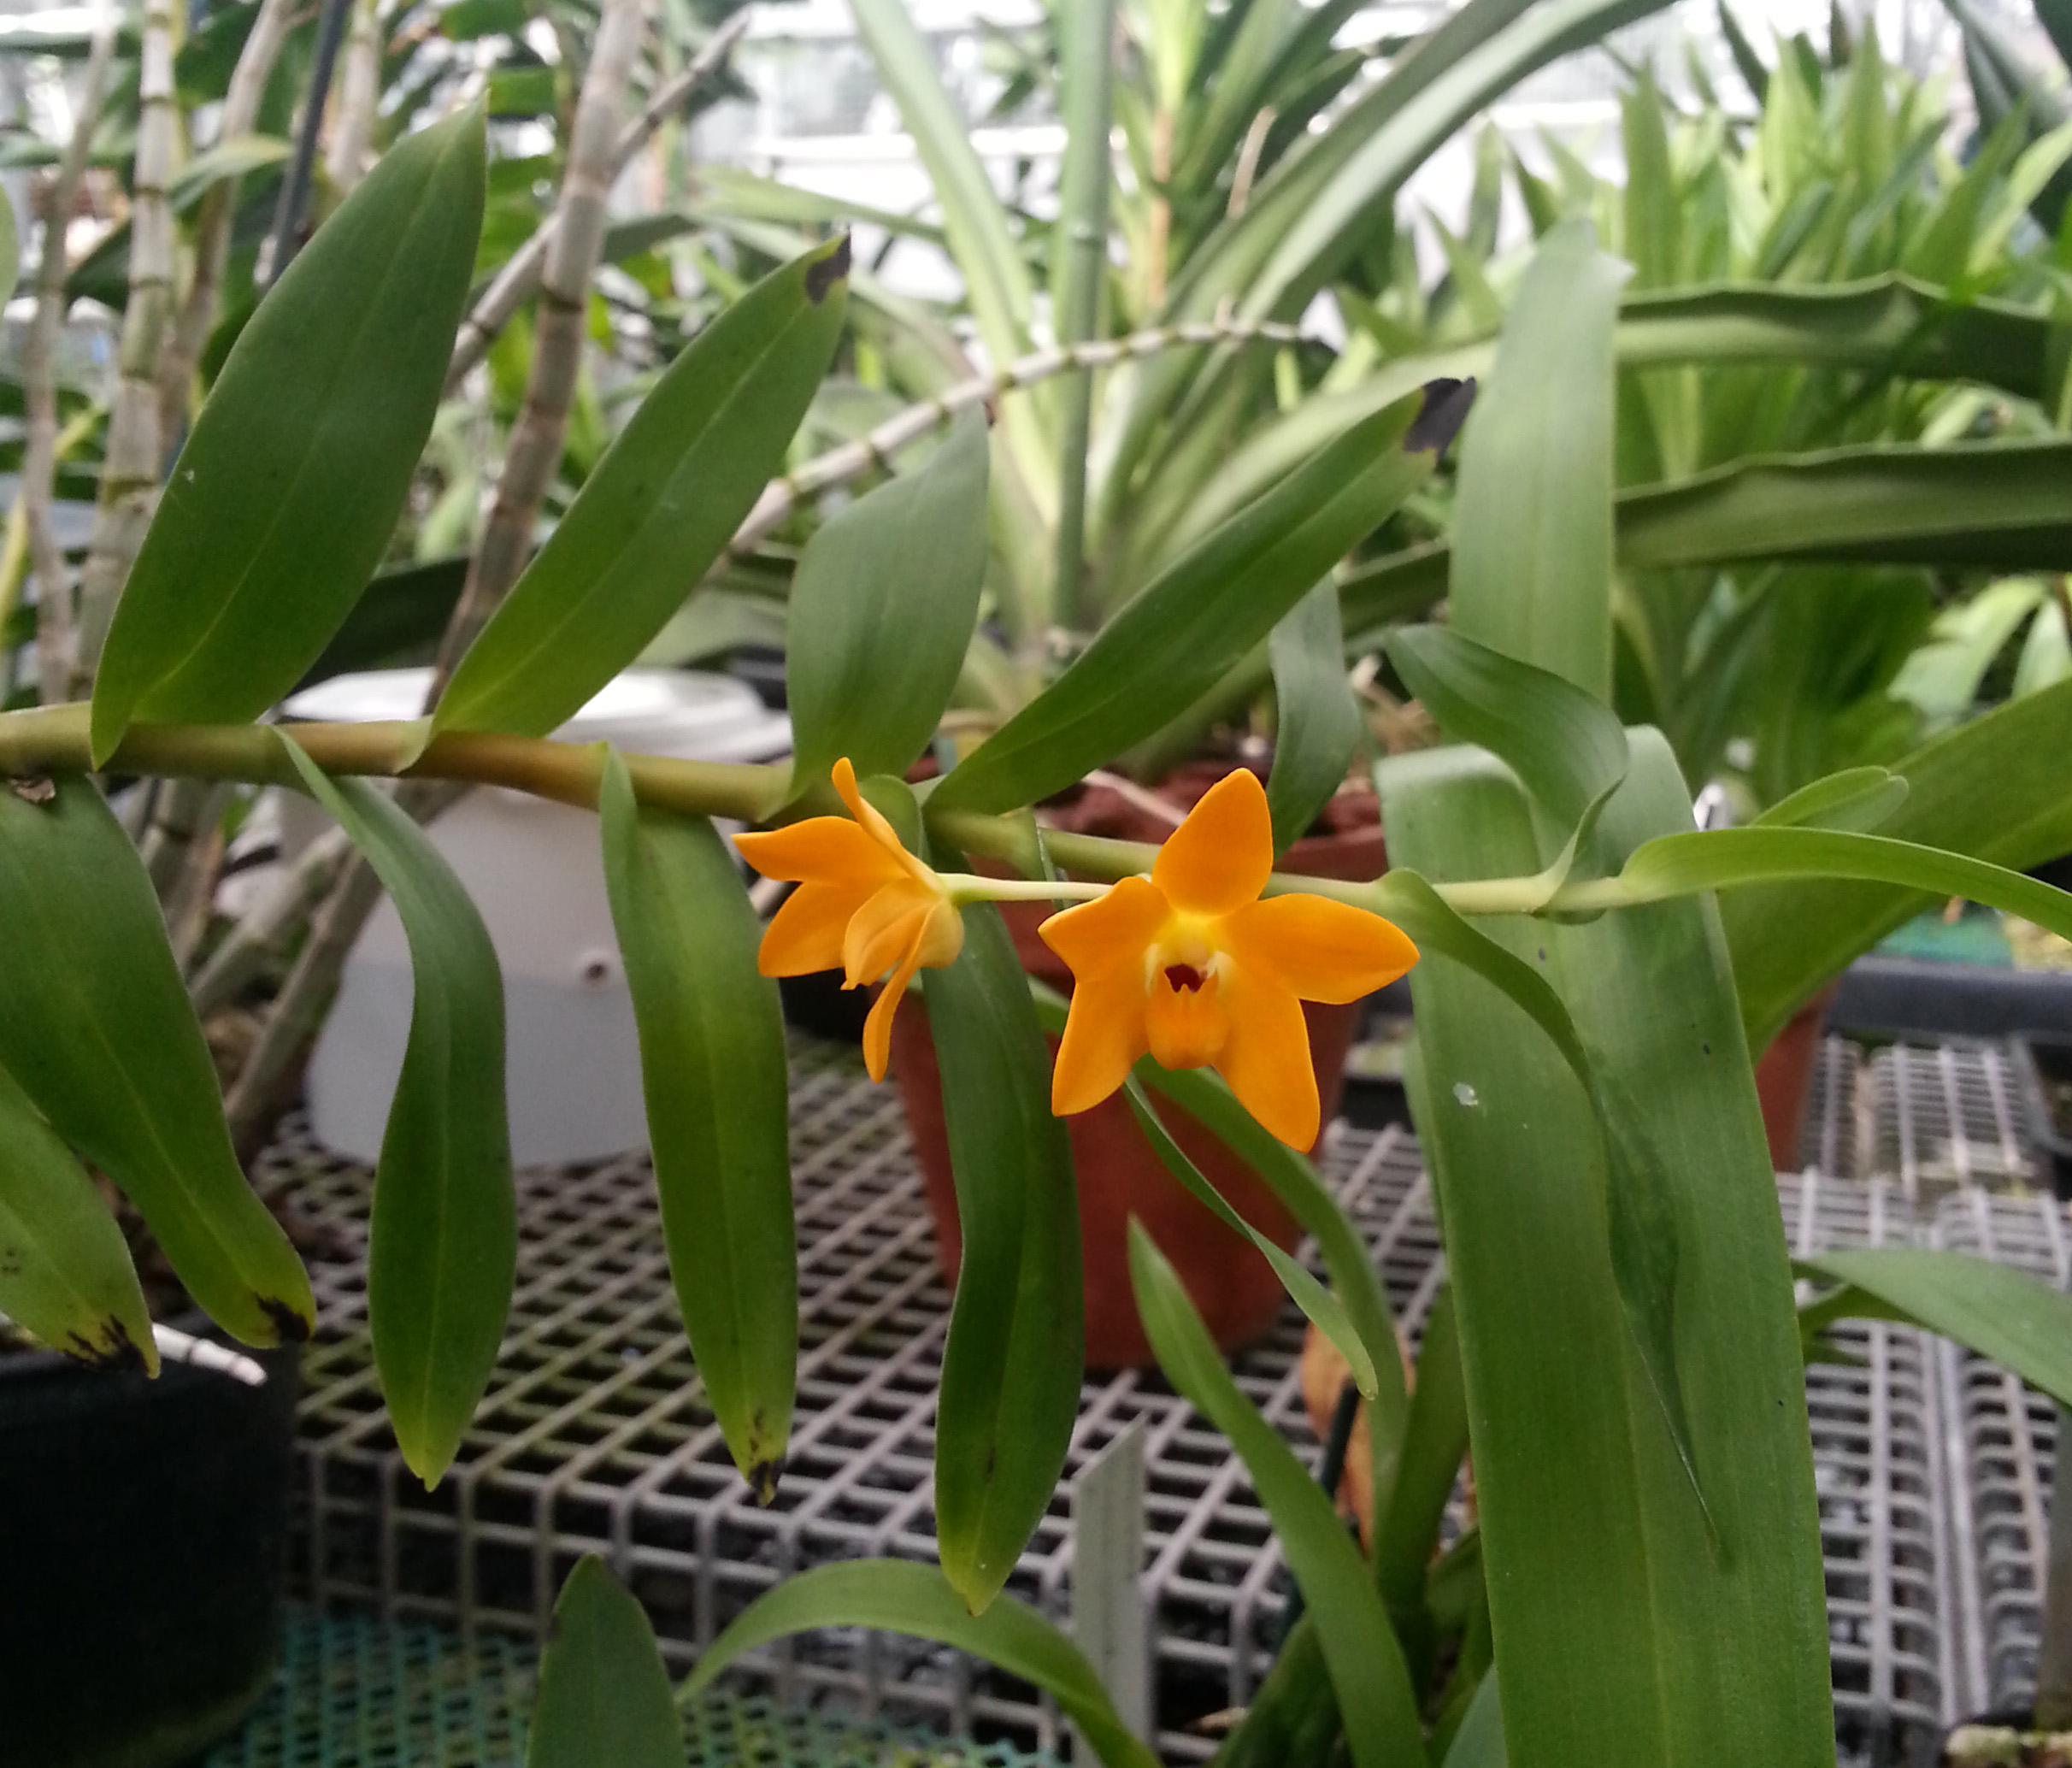 A new orchid found in New Guinea and cultivated at RBG Kew, Dendrobium aurifex. Image by Bala Kompalli.